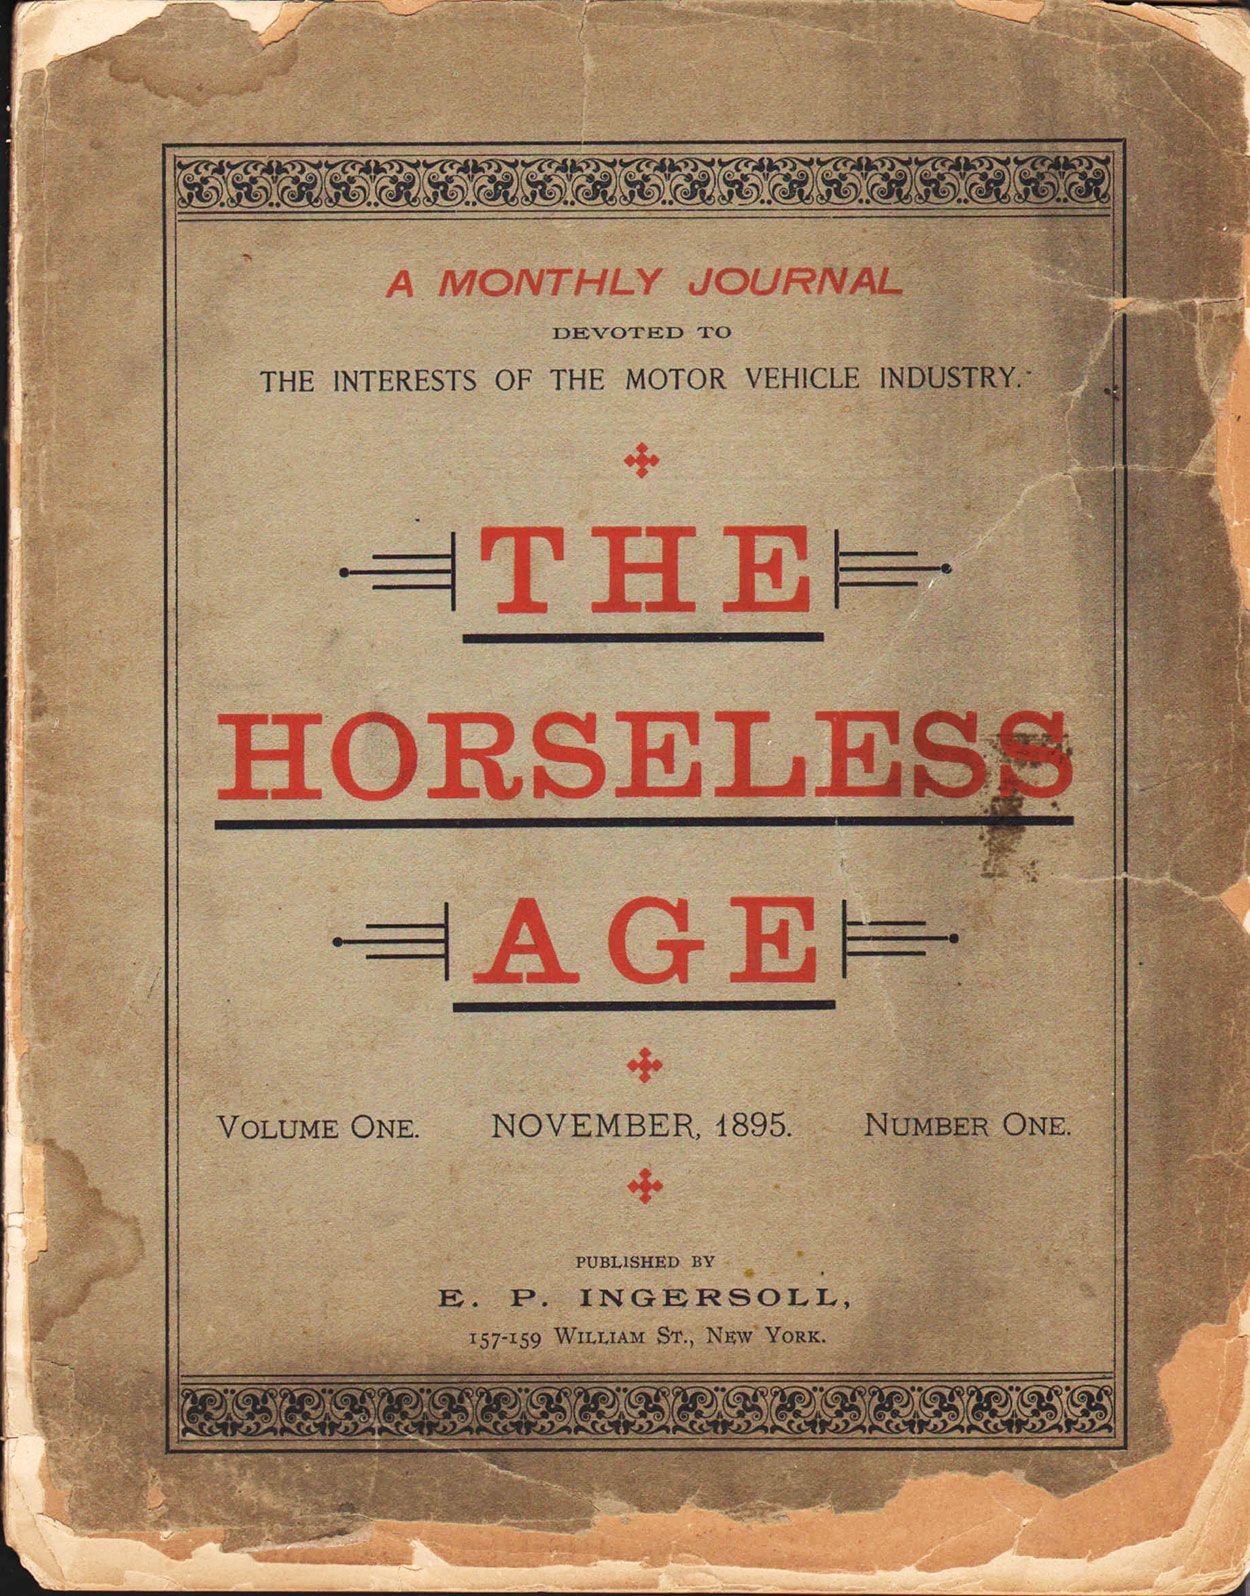 Horseless Age - The Steven Lomazow Collection